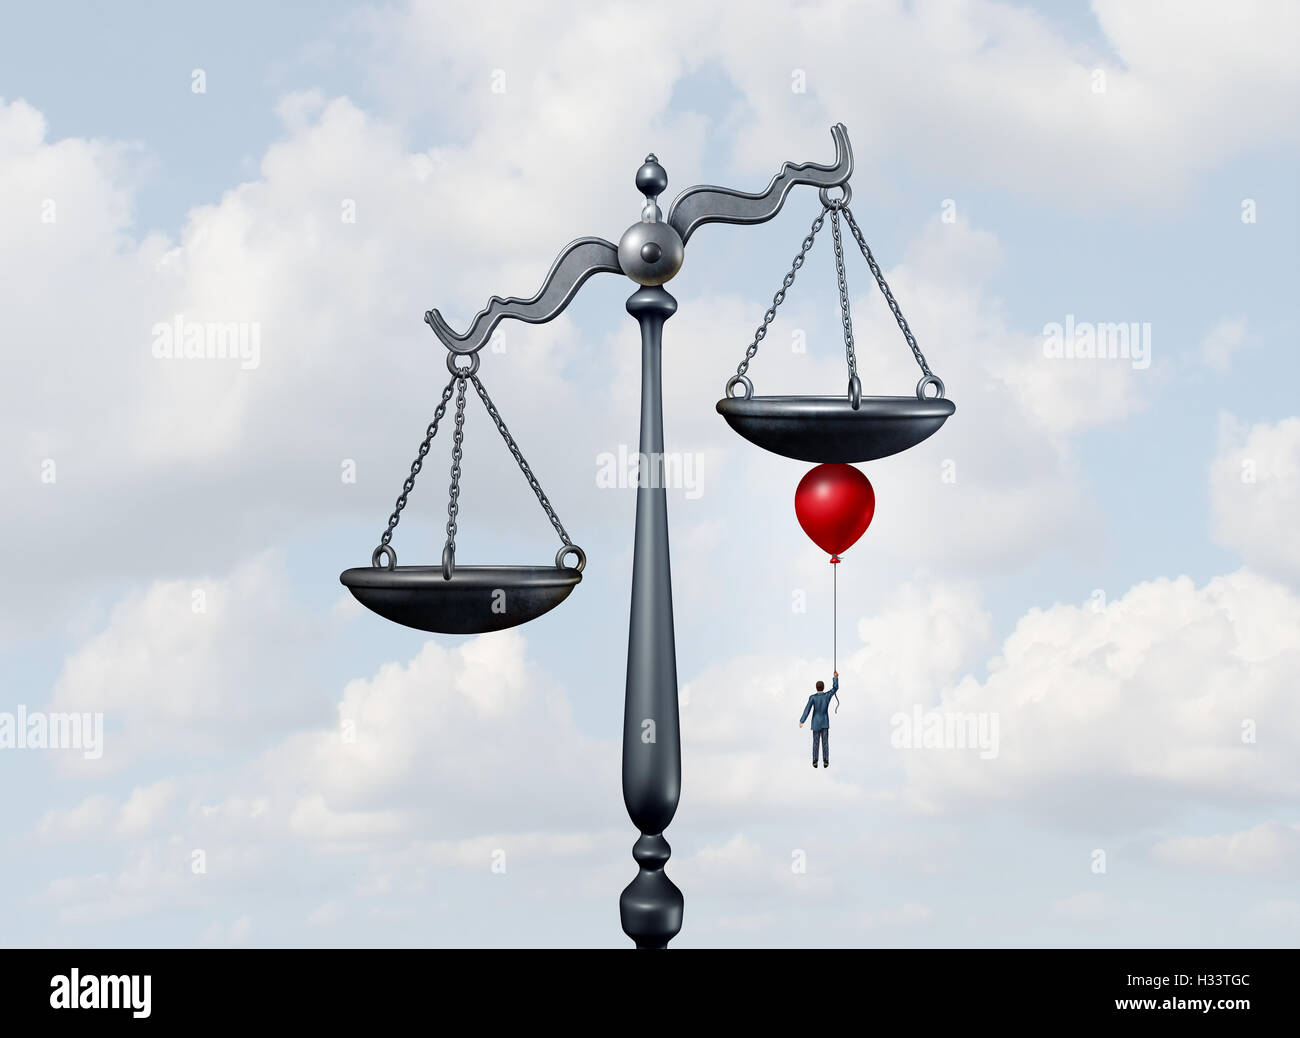 the concept of justice Restorative justice: the concept movement sweeping criminal justice field  focuses on harm and responsibility a revolution is occurring in criminal justice.